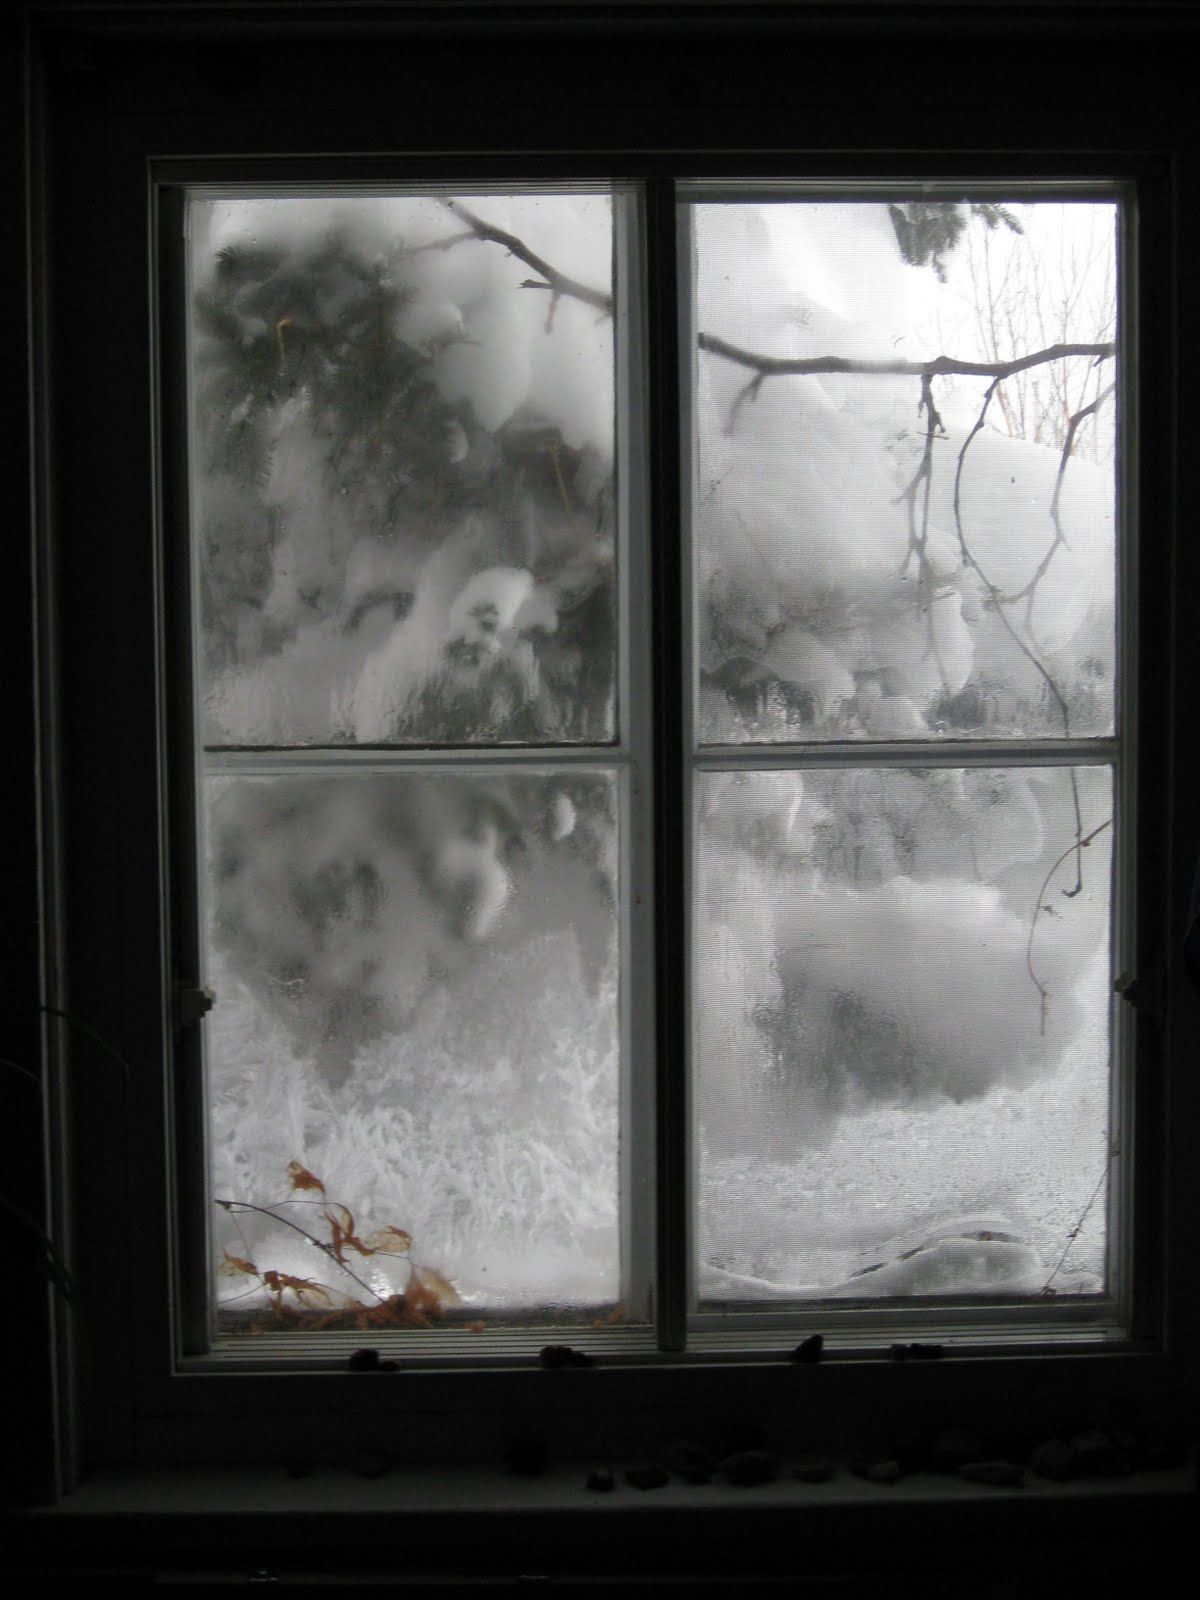 snow outside window ø º w ndὄw v ϛ ὄnϛ º ø